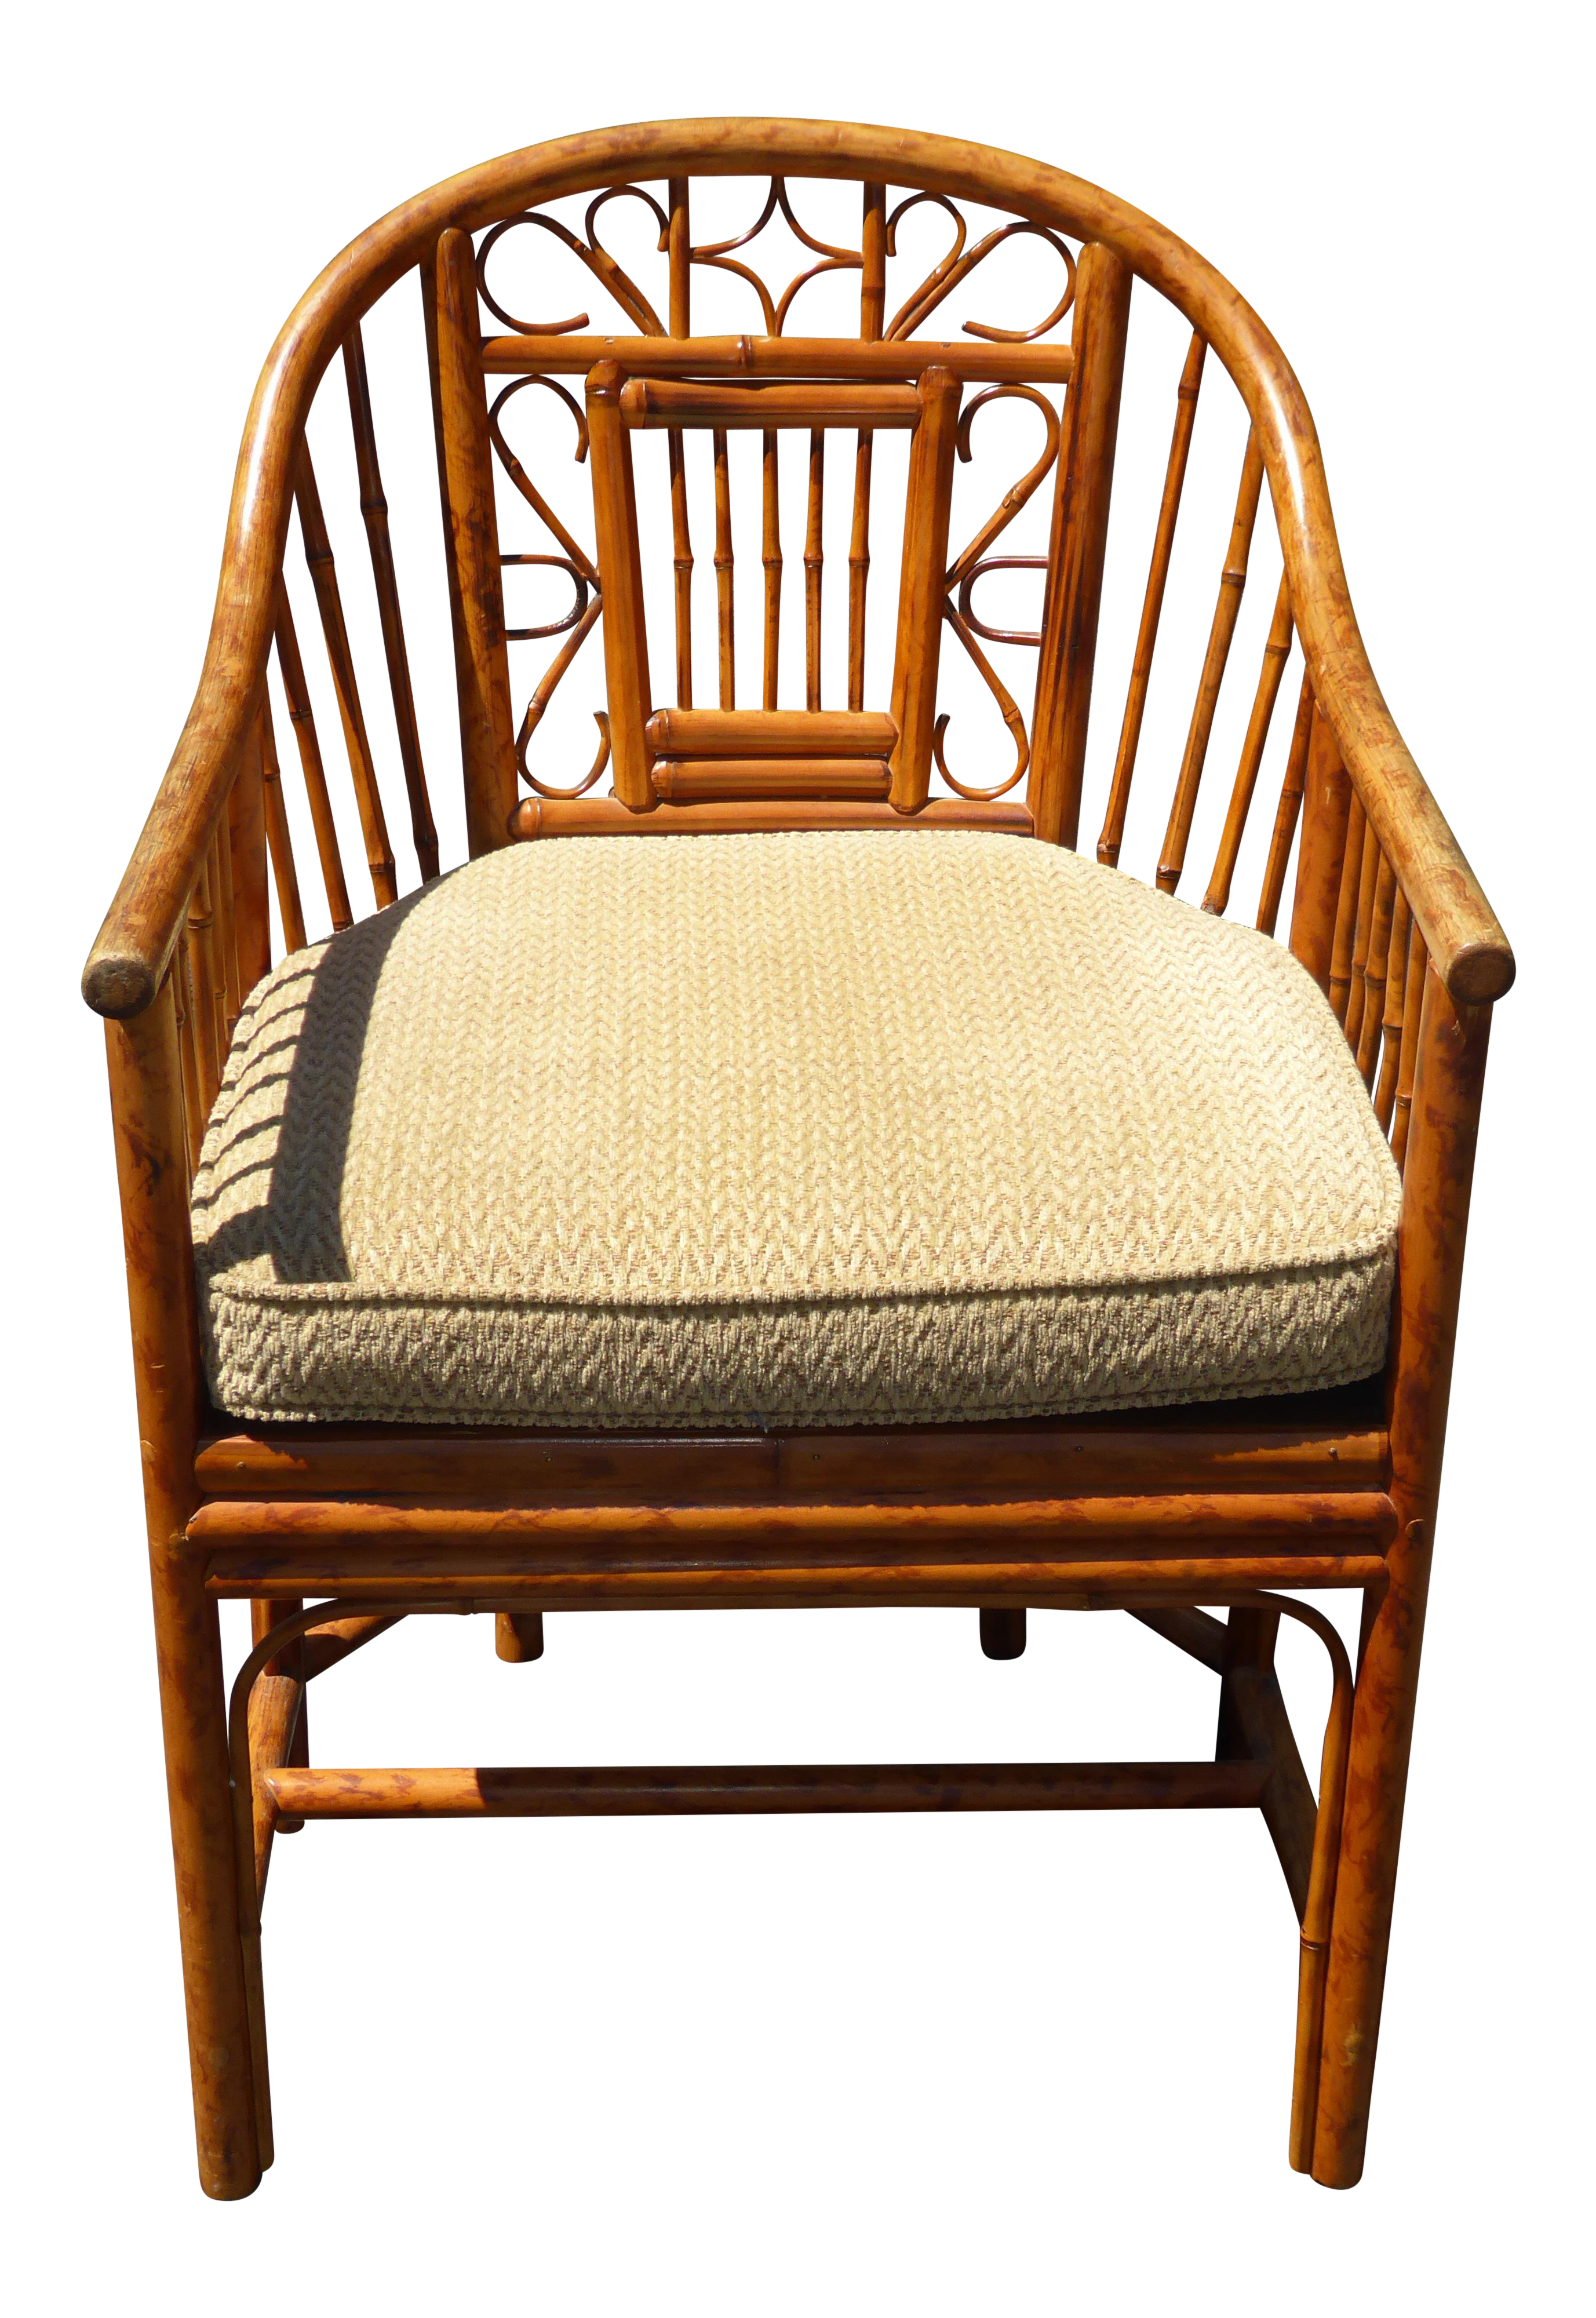 Charmant Vintage Chinoiserie Brighton Pavillion Style Rattan Bamboo U0026 Cane Arm Chair